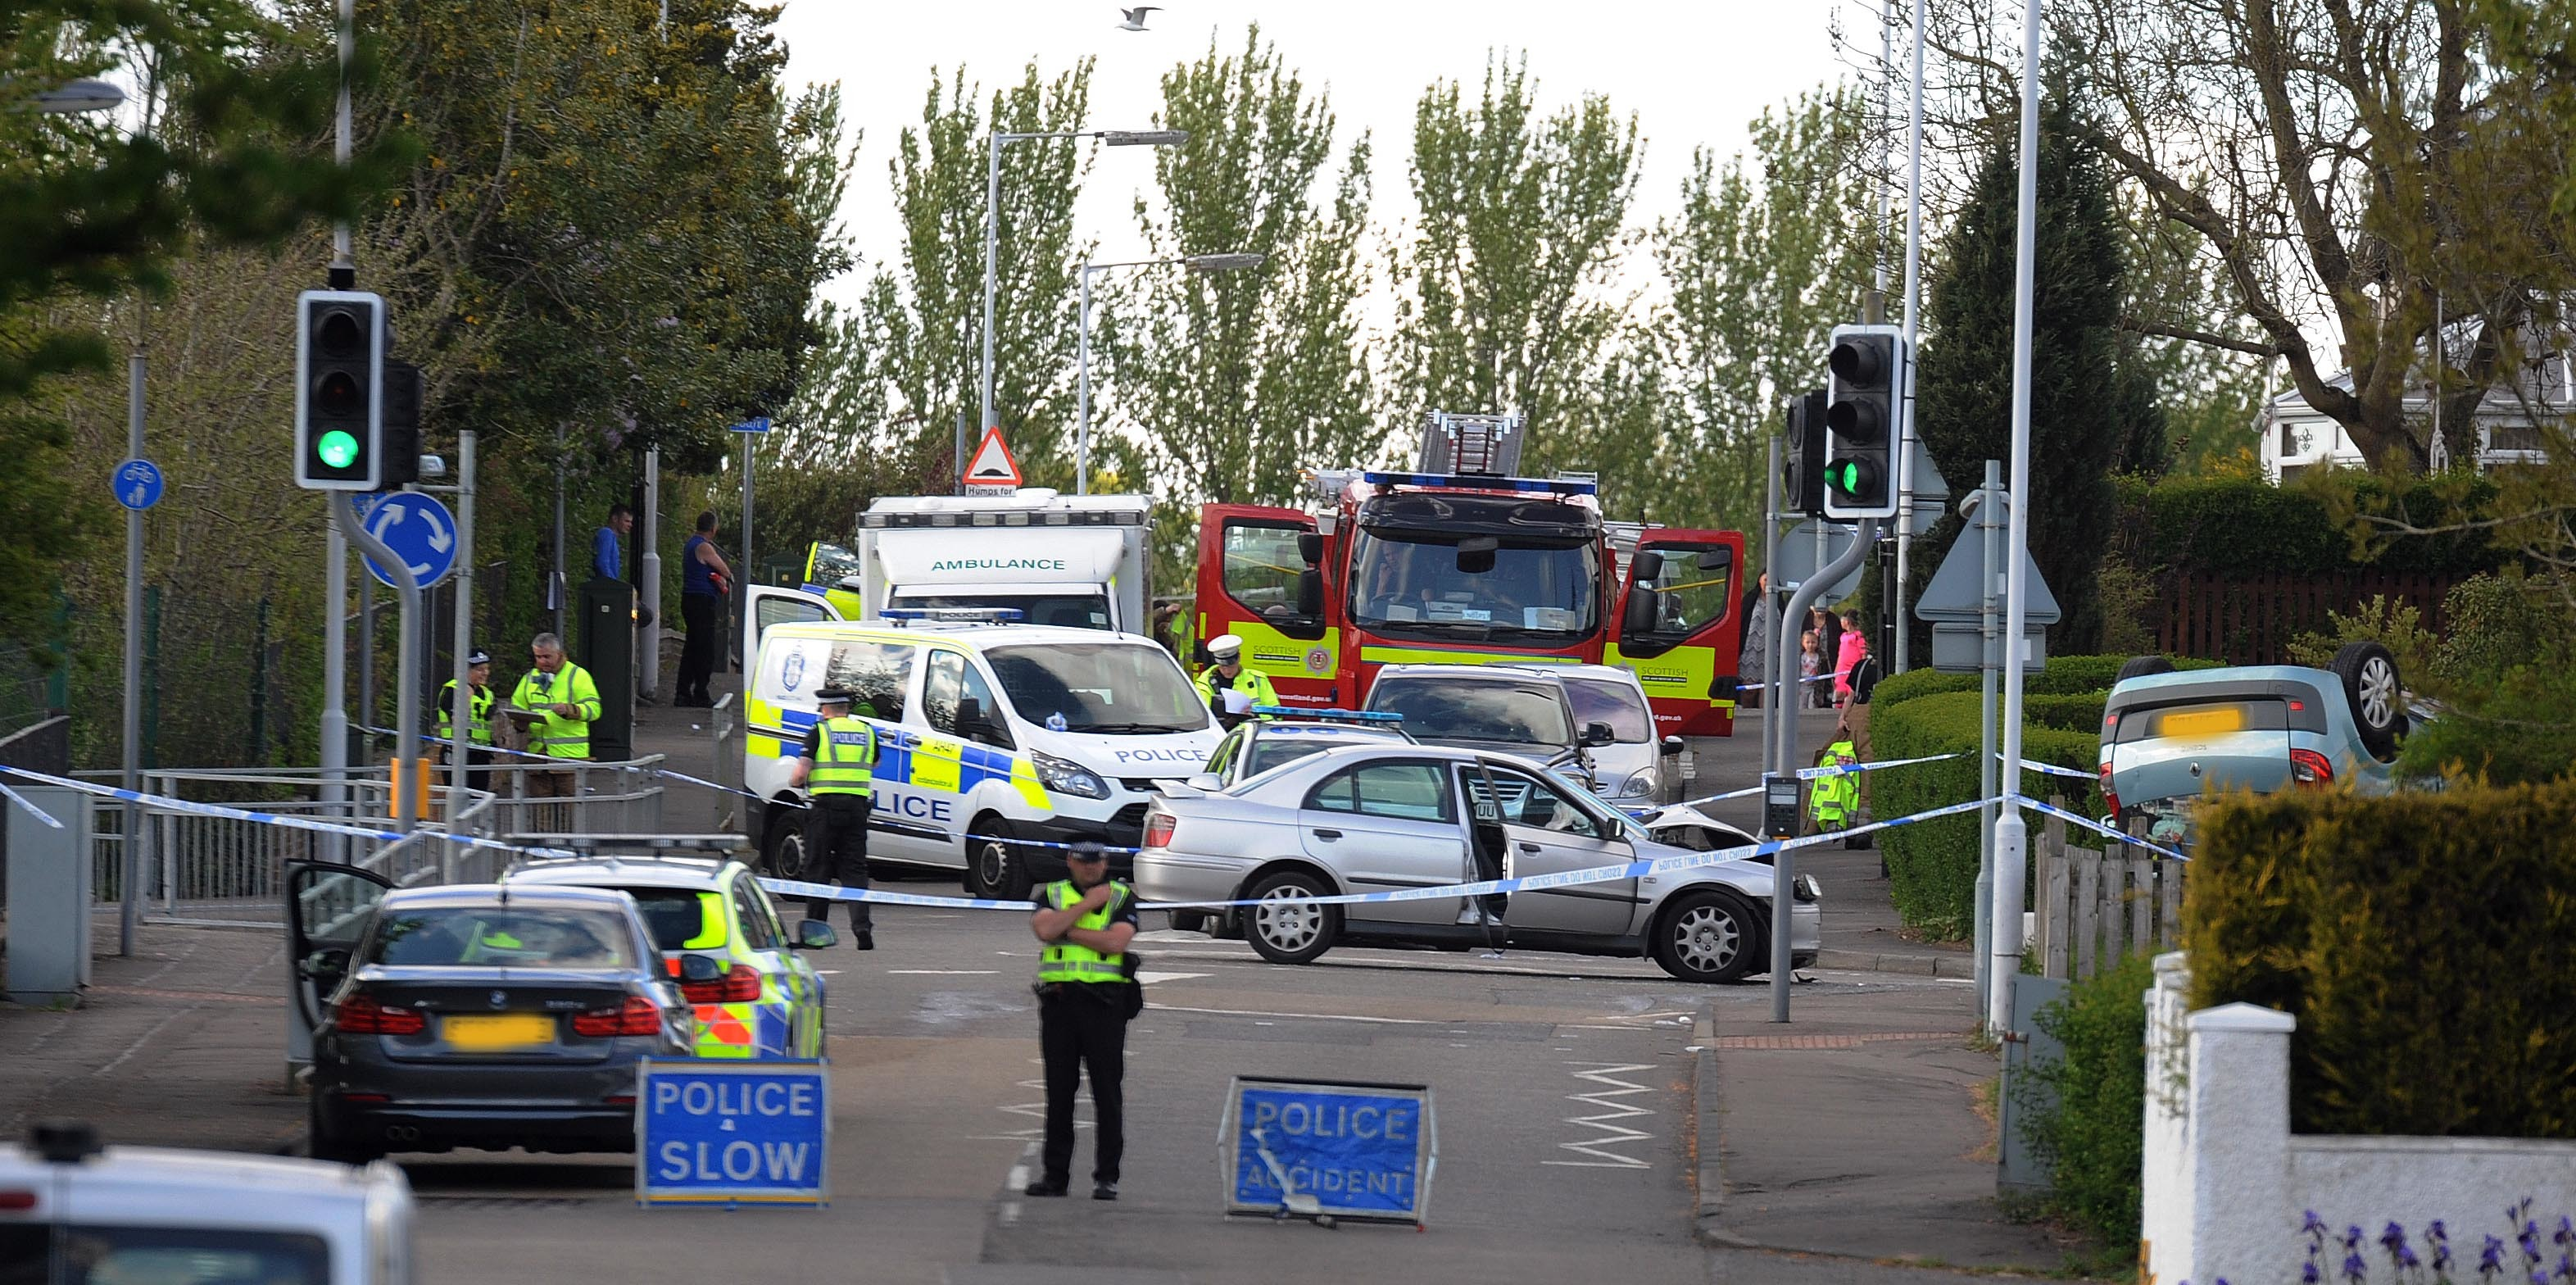 The scene of the accident on May 15.